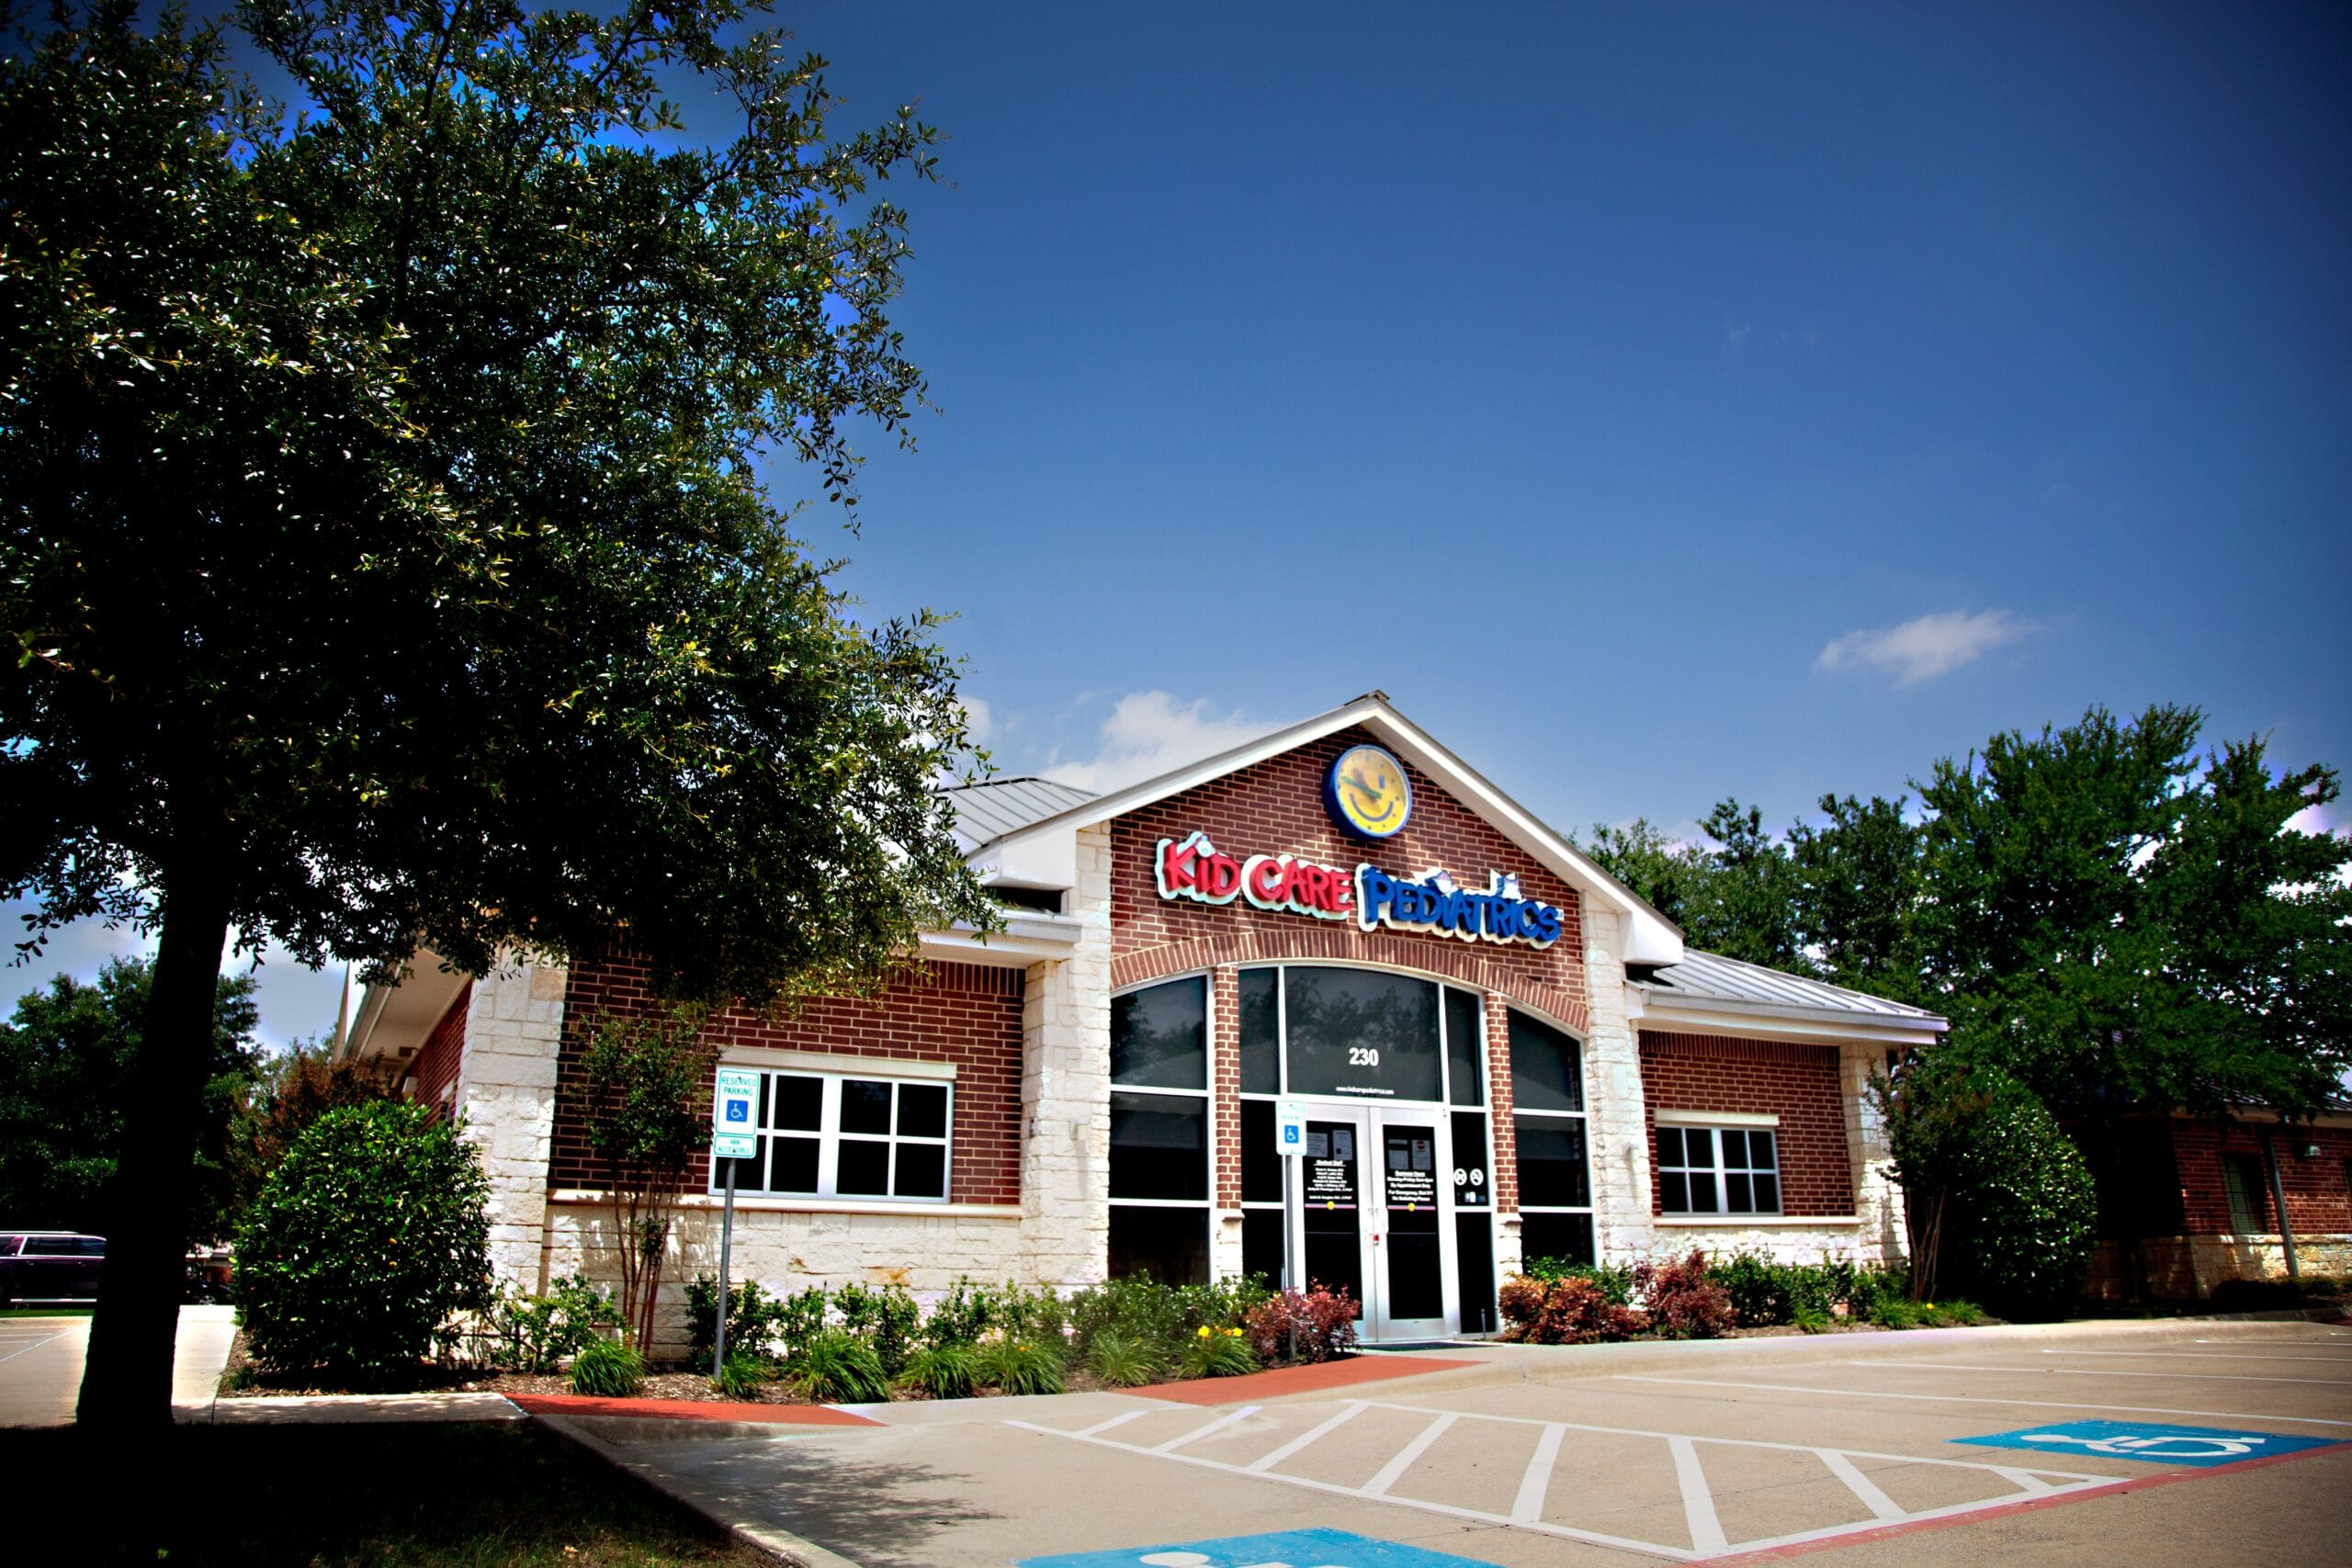 Kid Care Pediatrics office located in Keller, Texas